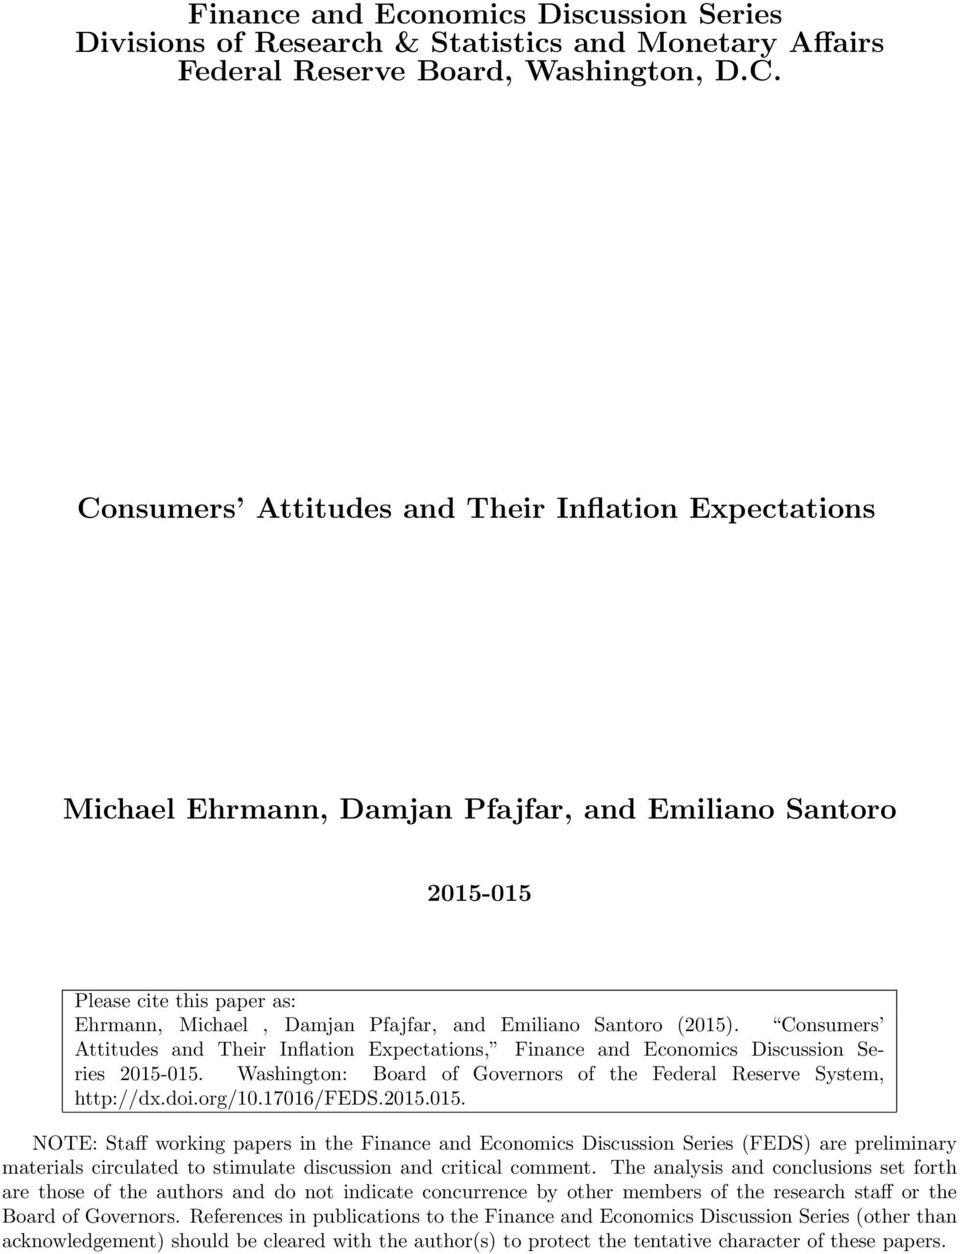 (2015). Consumers Attitudes and Their Inflation Expectations, Finance and Economics Discussion Series 2015-015. Washington: Board of Governors of the Federal Reserve System, http://dx.doi.org/10.